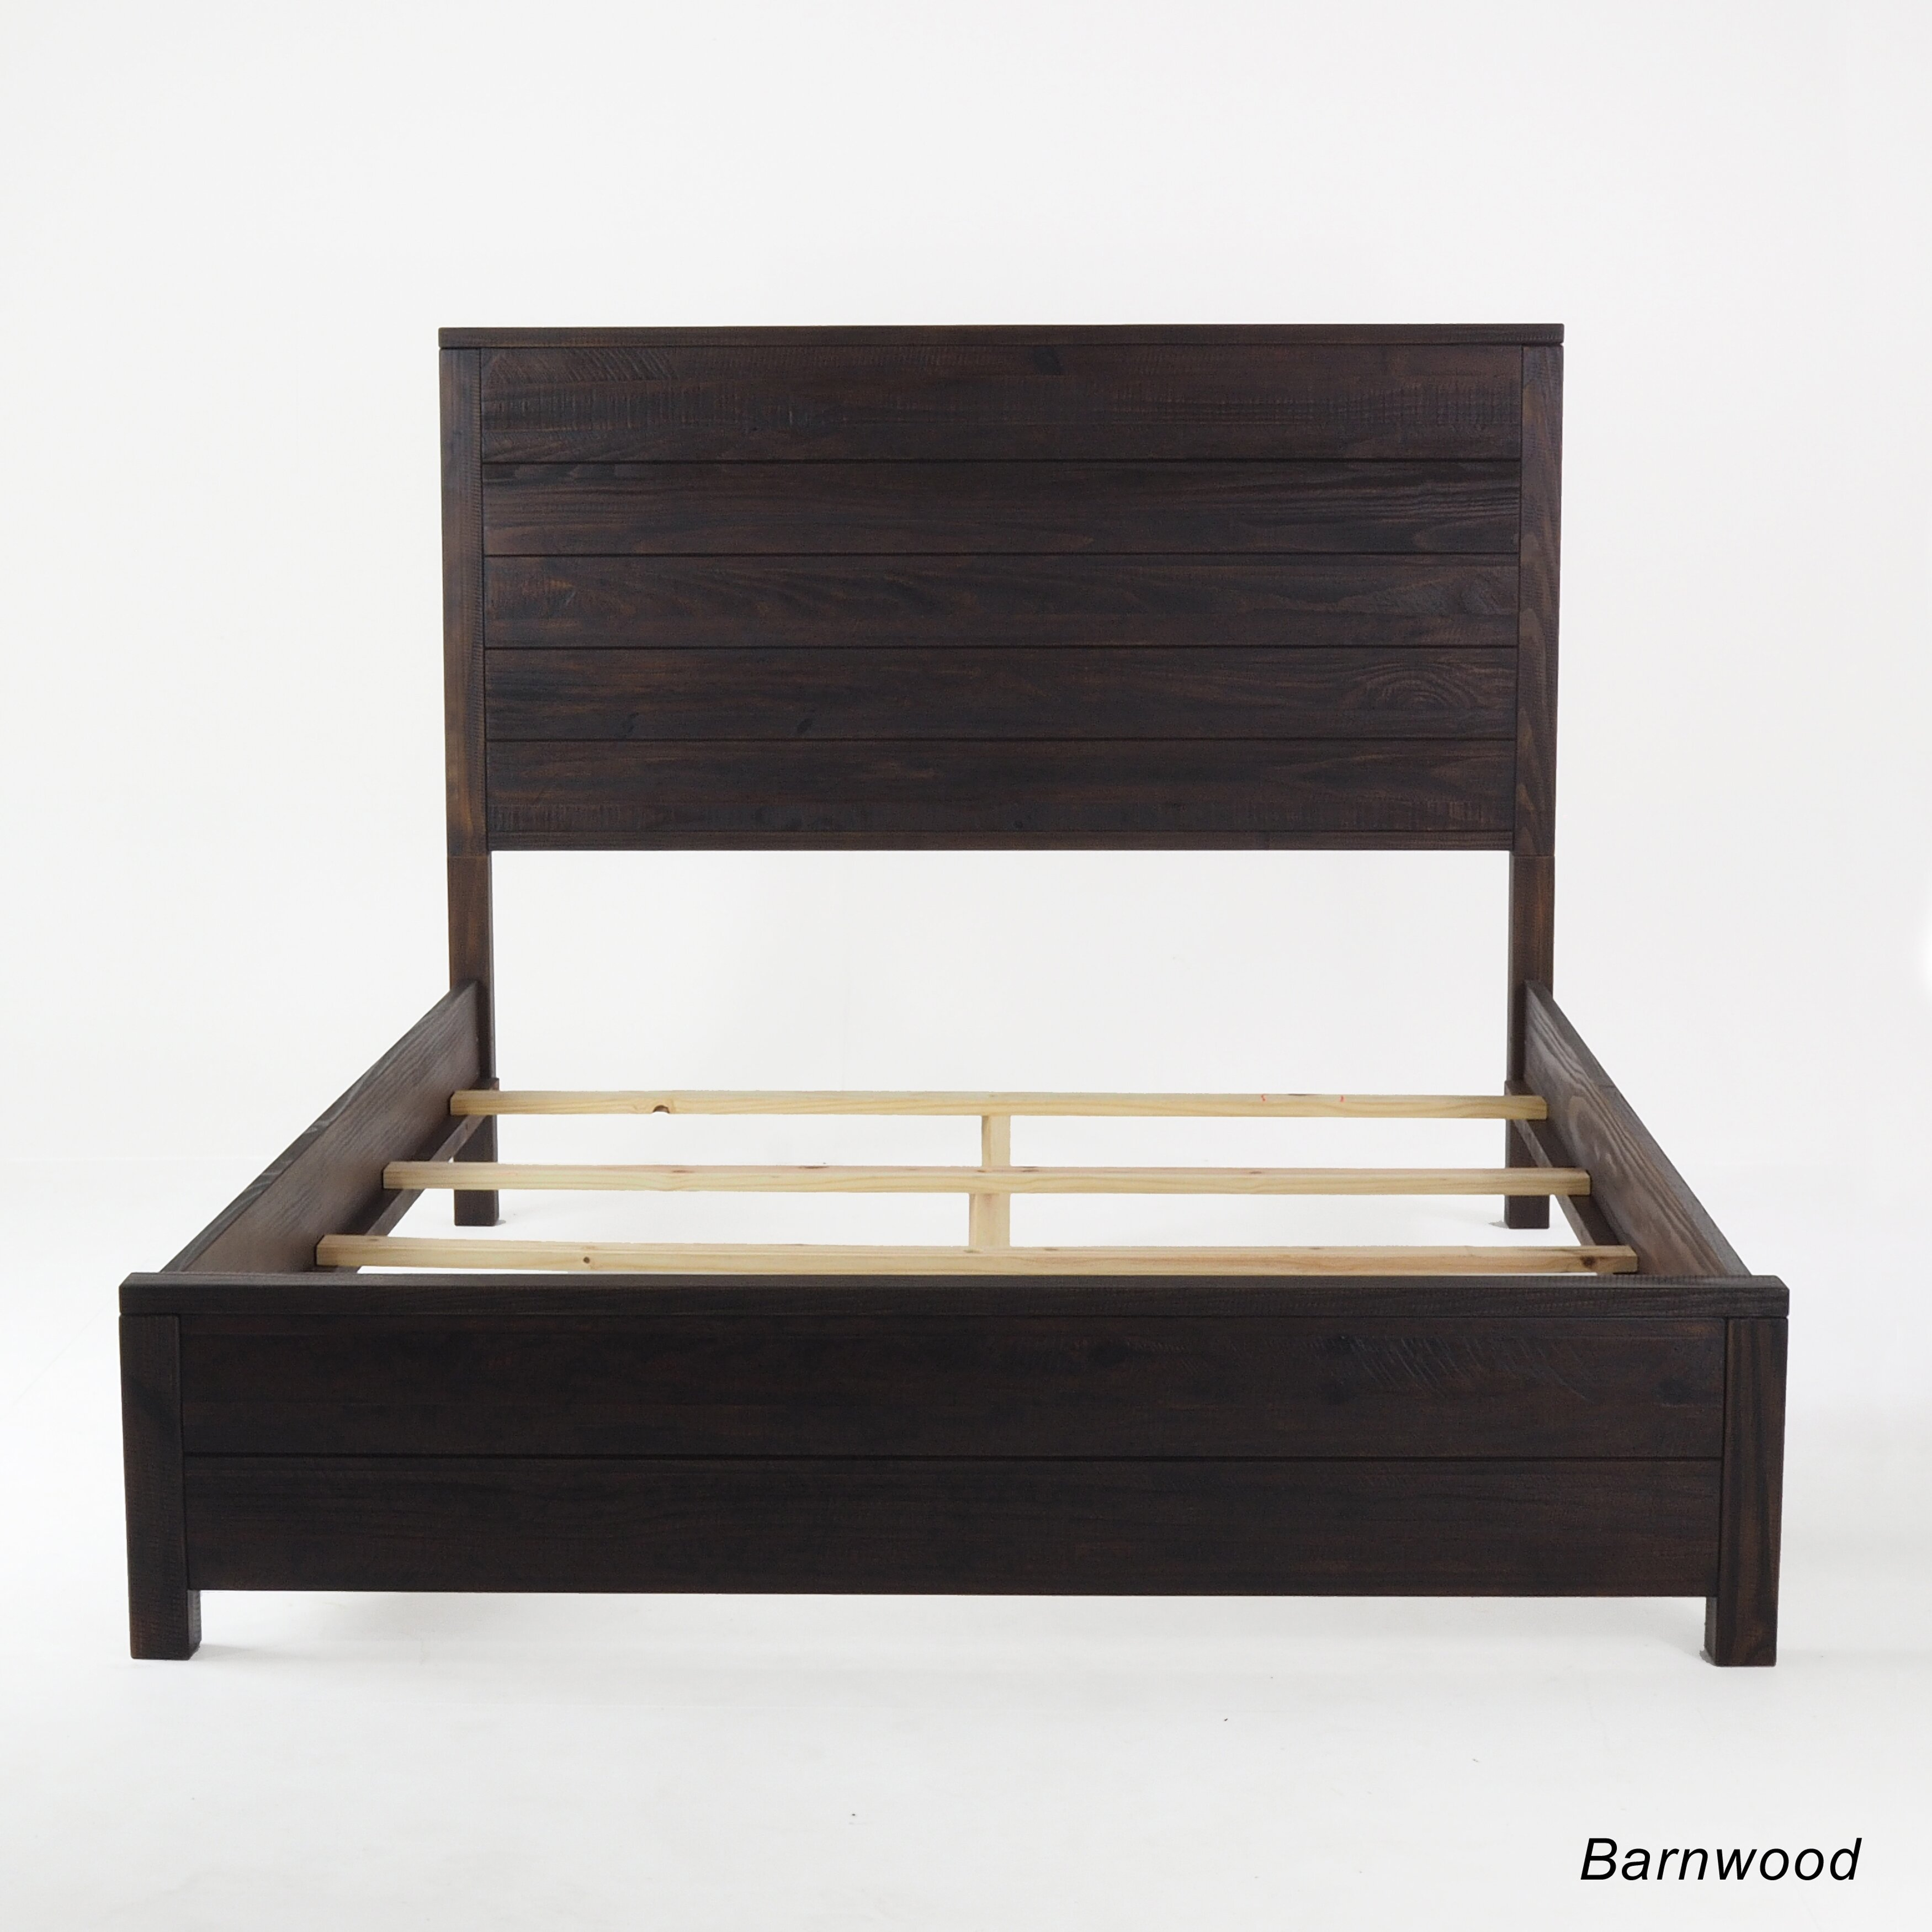 Very Impressive portraiture of Grain Wood Furniture Montauk Panel Bed & Reviews Wayfair Supply with #8B7140 color and 3500x3500 pixels